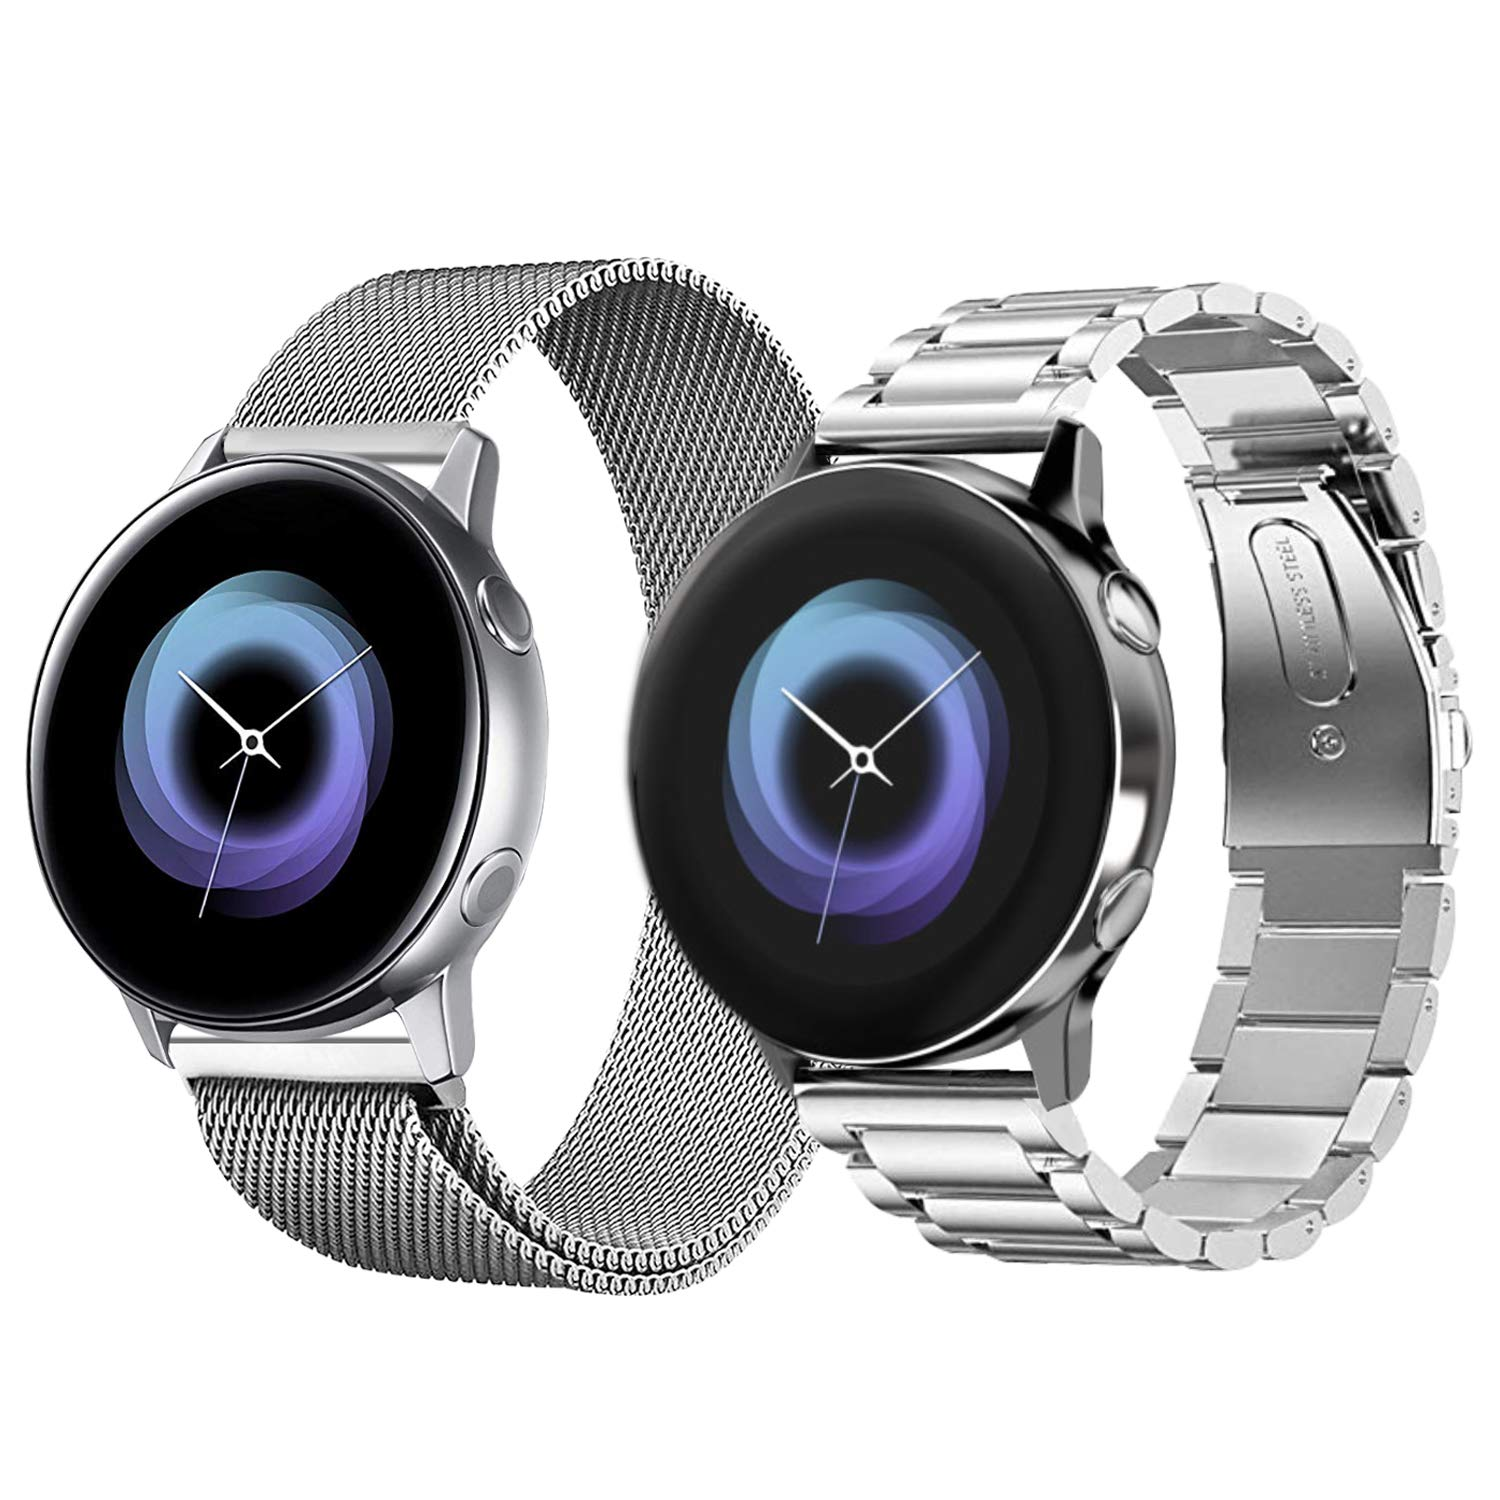 VICARA Compatible with Galaxy Watch Active (40mm) Bands, Stainless Steel Band + Mesh Metal Replacement Band for Galaxy Watch Active SM-R500 Smart ...